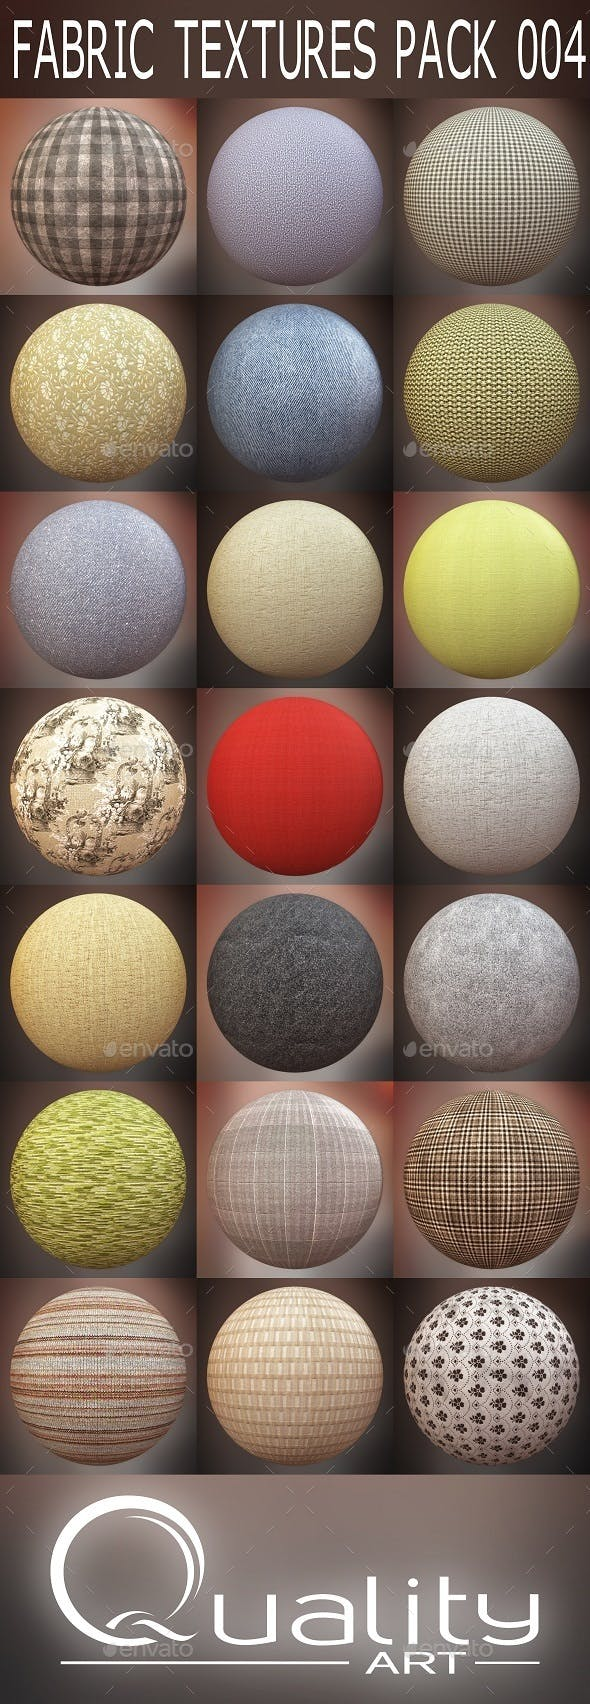 FABRIC TEXTURES PACK 004 - 3DOcean Item for Sale